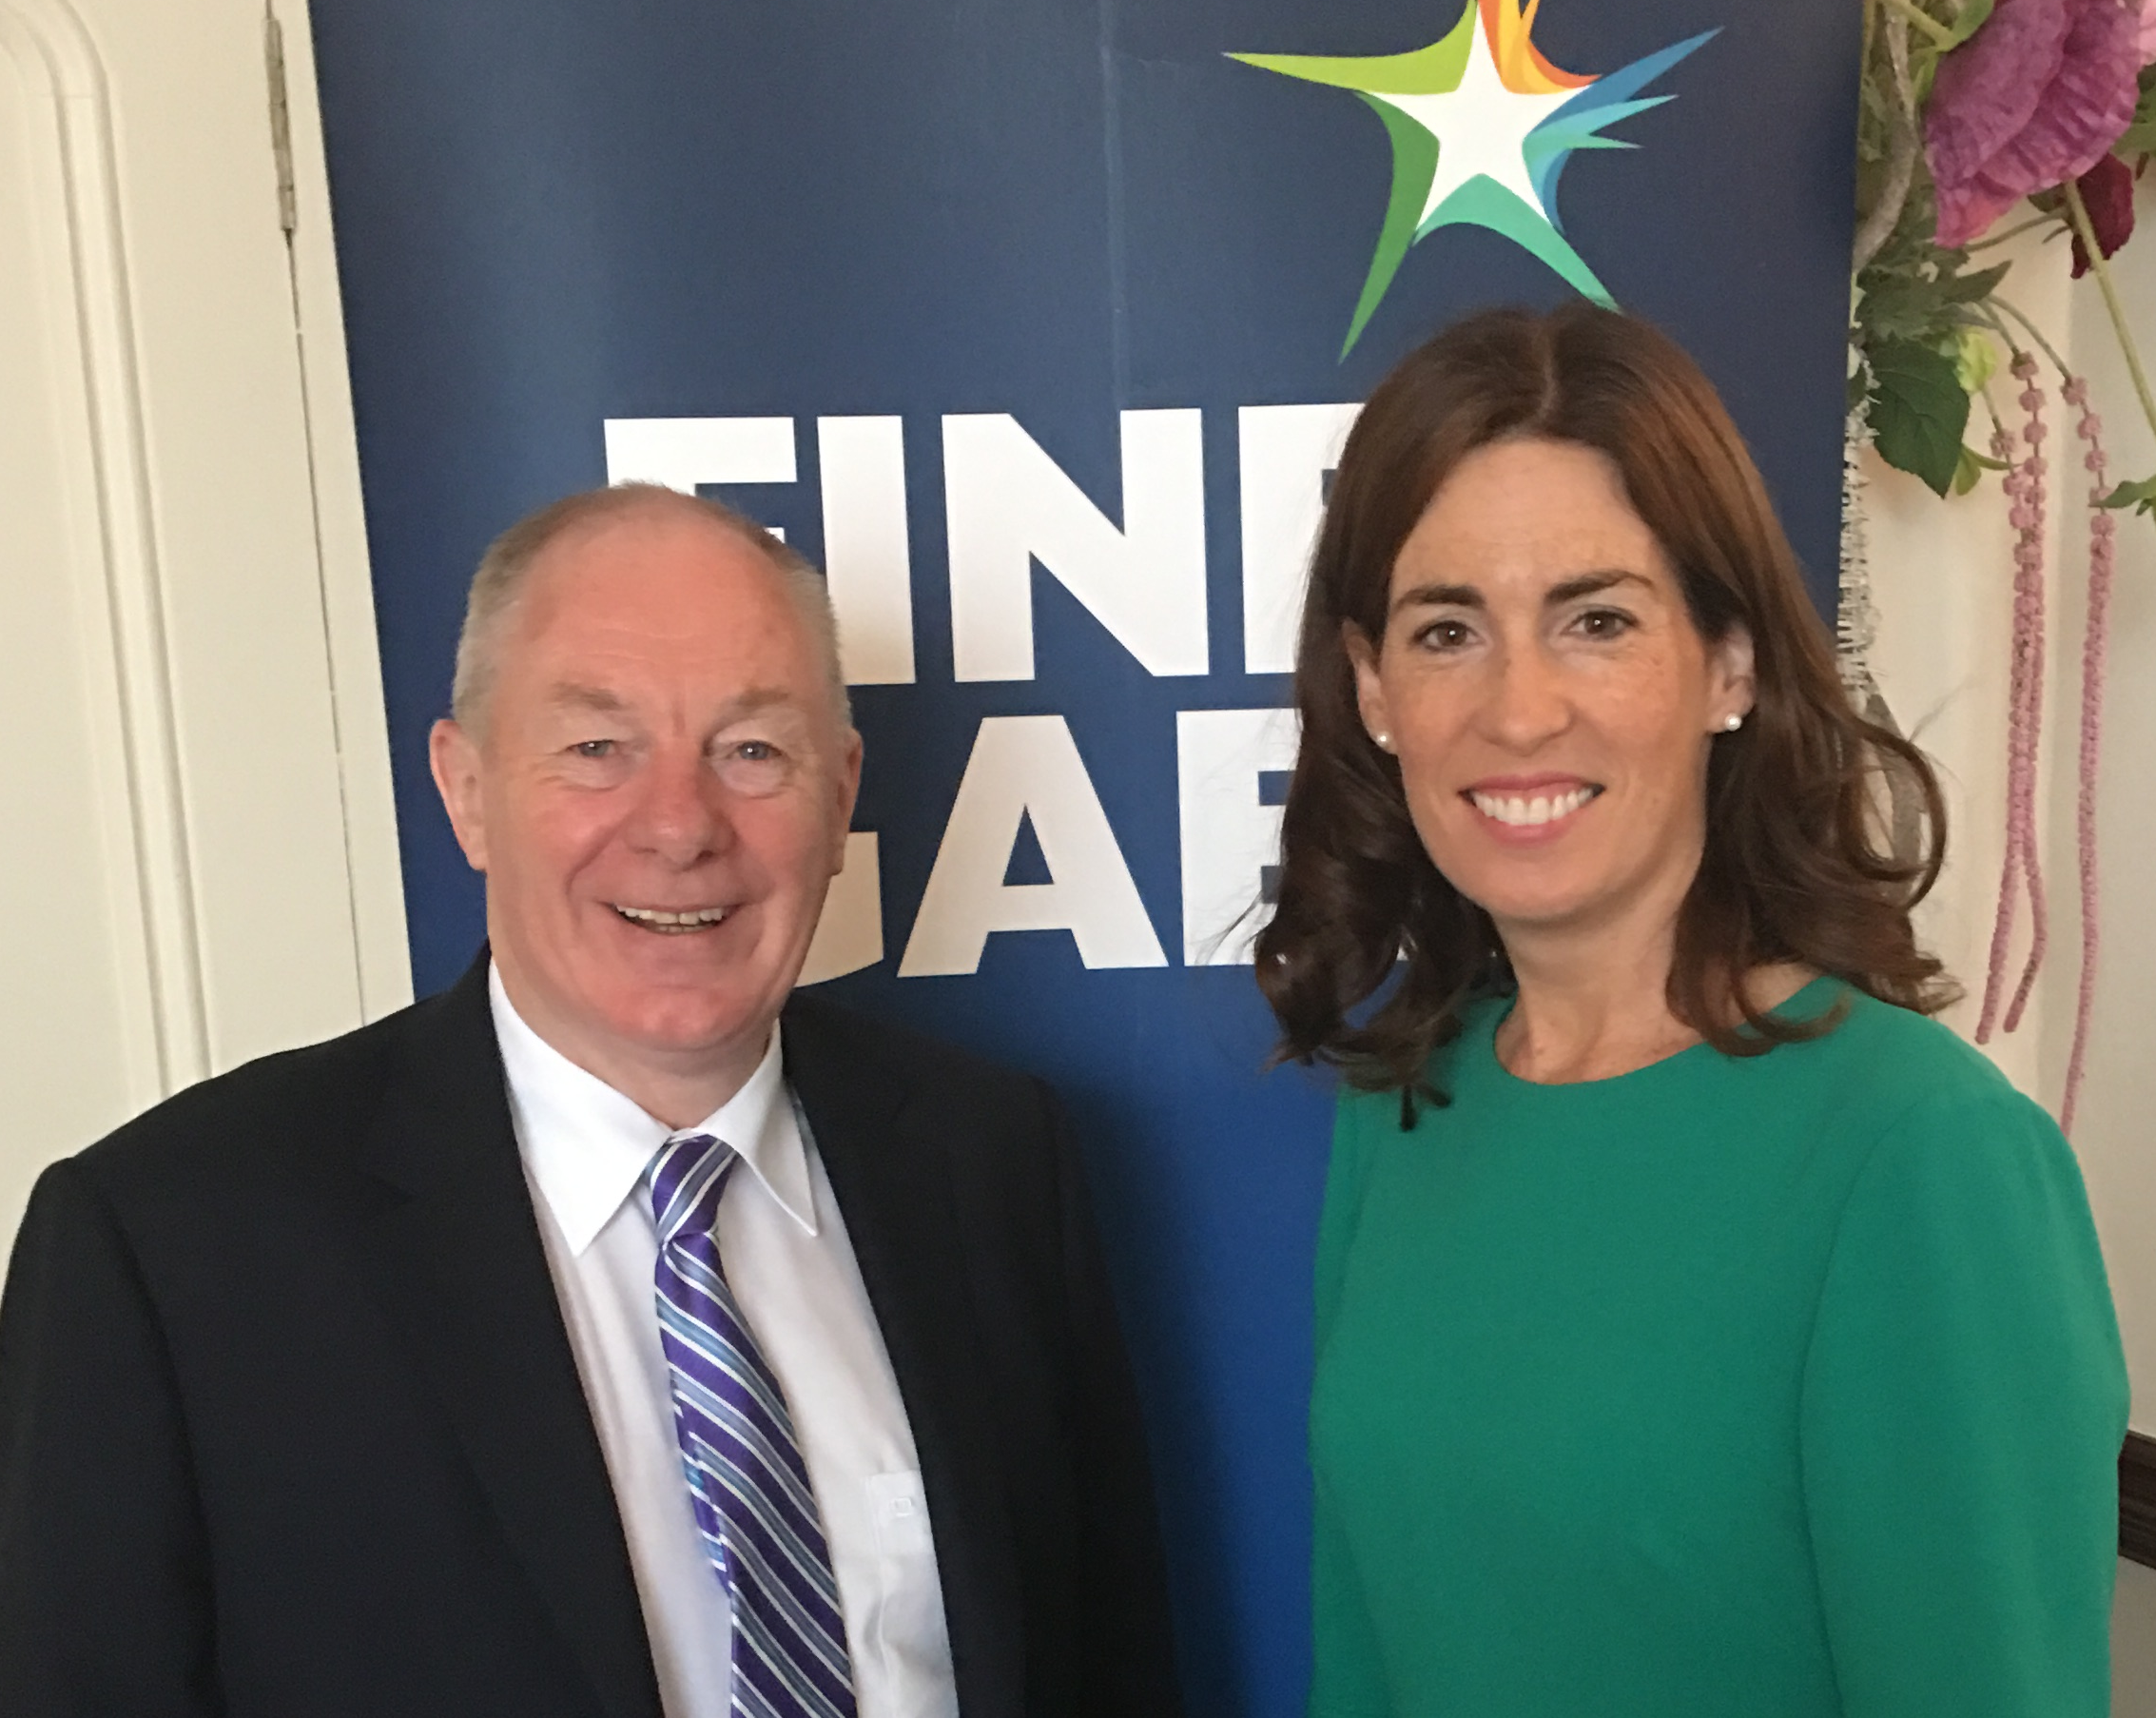 Michael Ring and Hildegarde Naughton TD